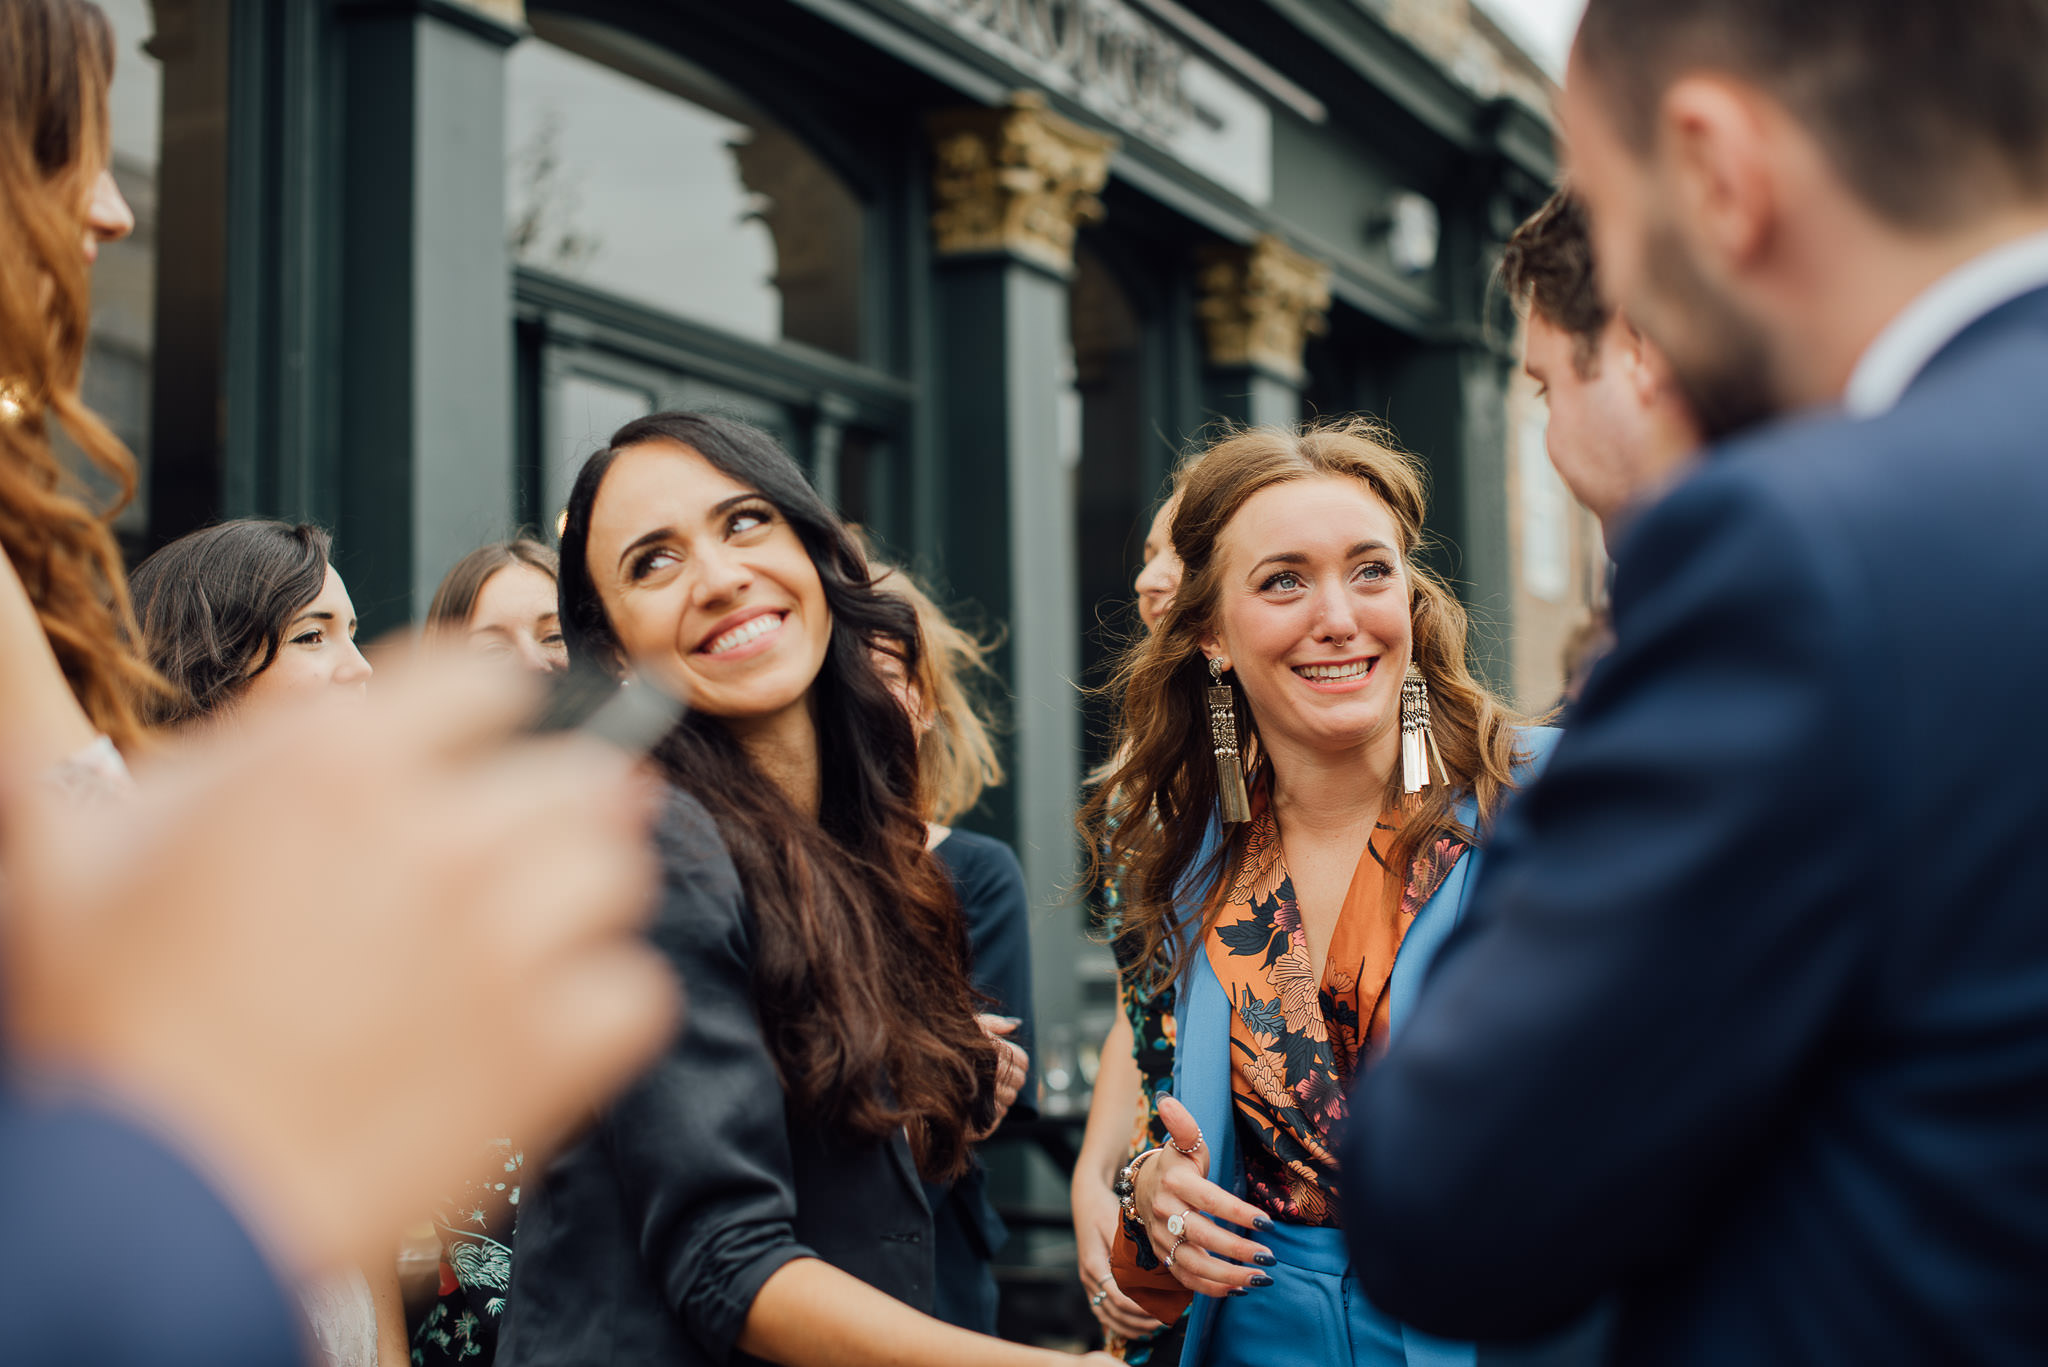 Guests drinking outside the londesborough pub in stoke newington town hall wedding by creative and alternative london wedding photographer the shannons photography